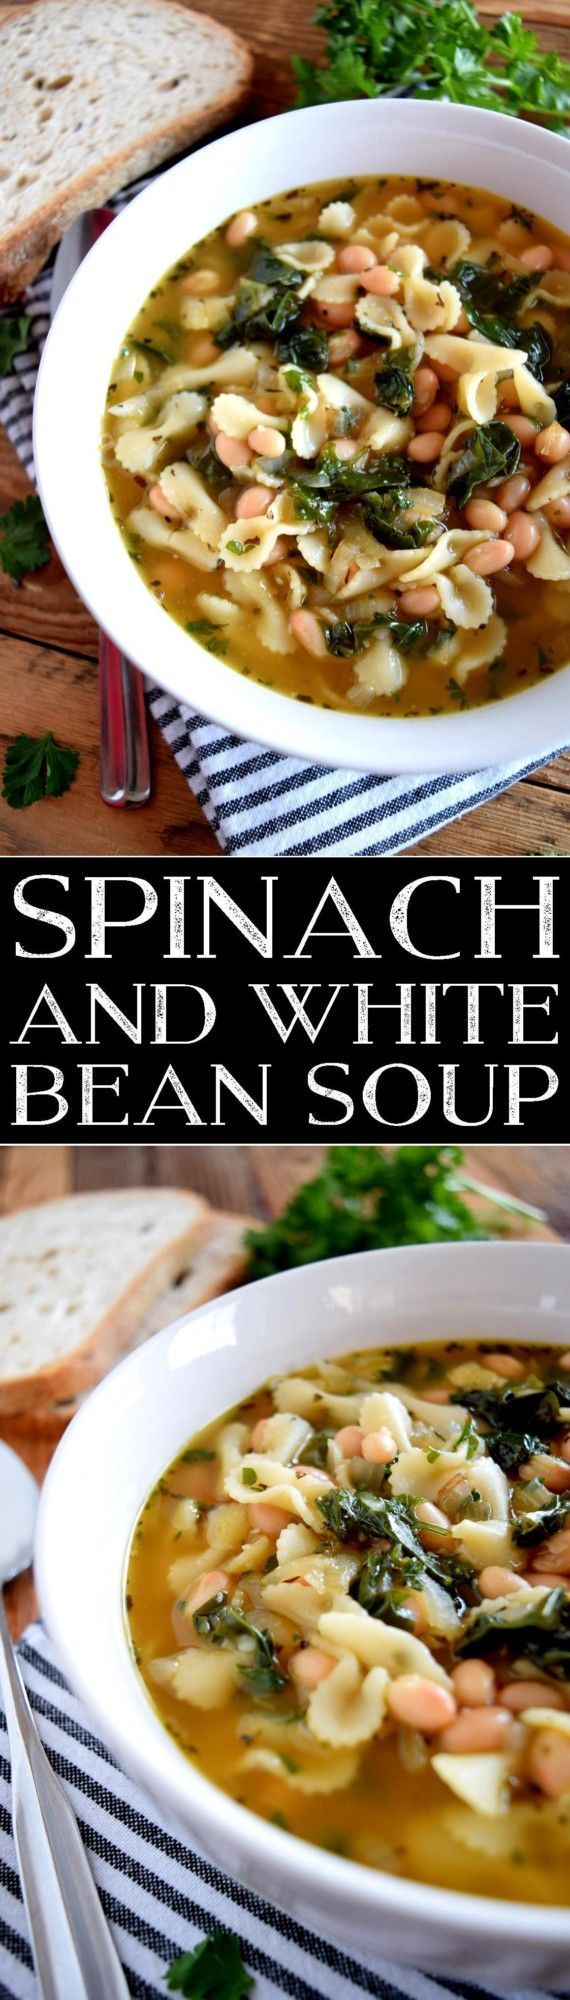 Spinach and White Bean Soup - Lord Byron's Kitchen